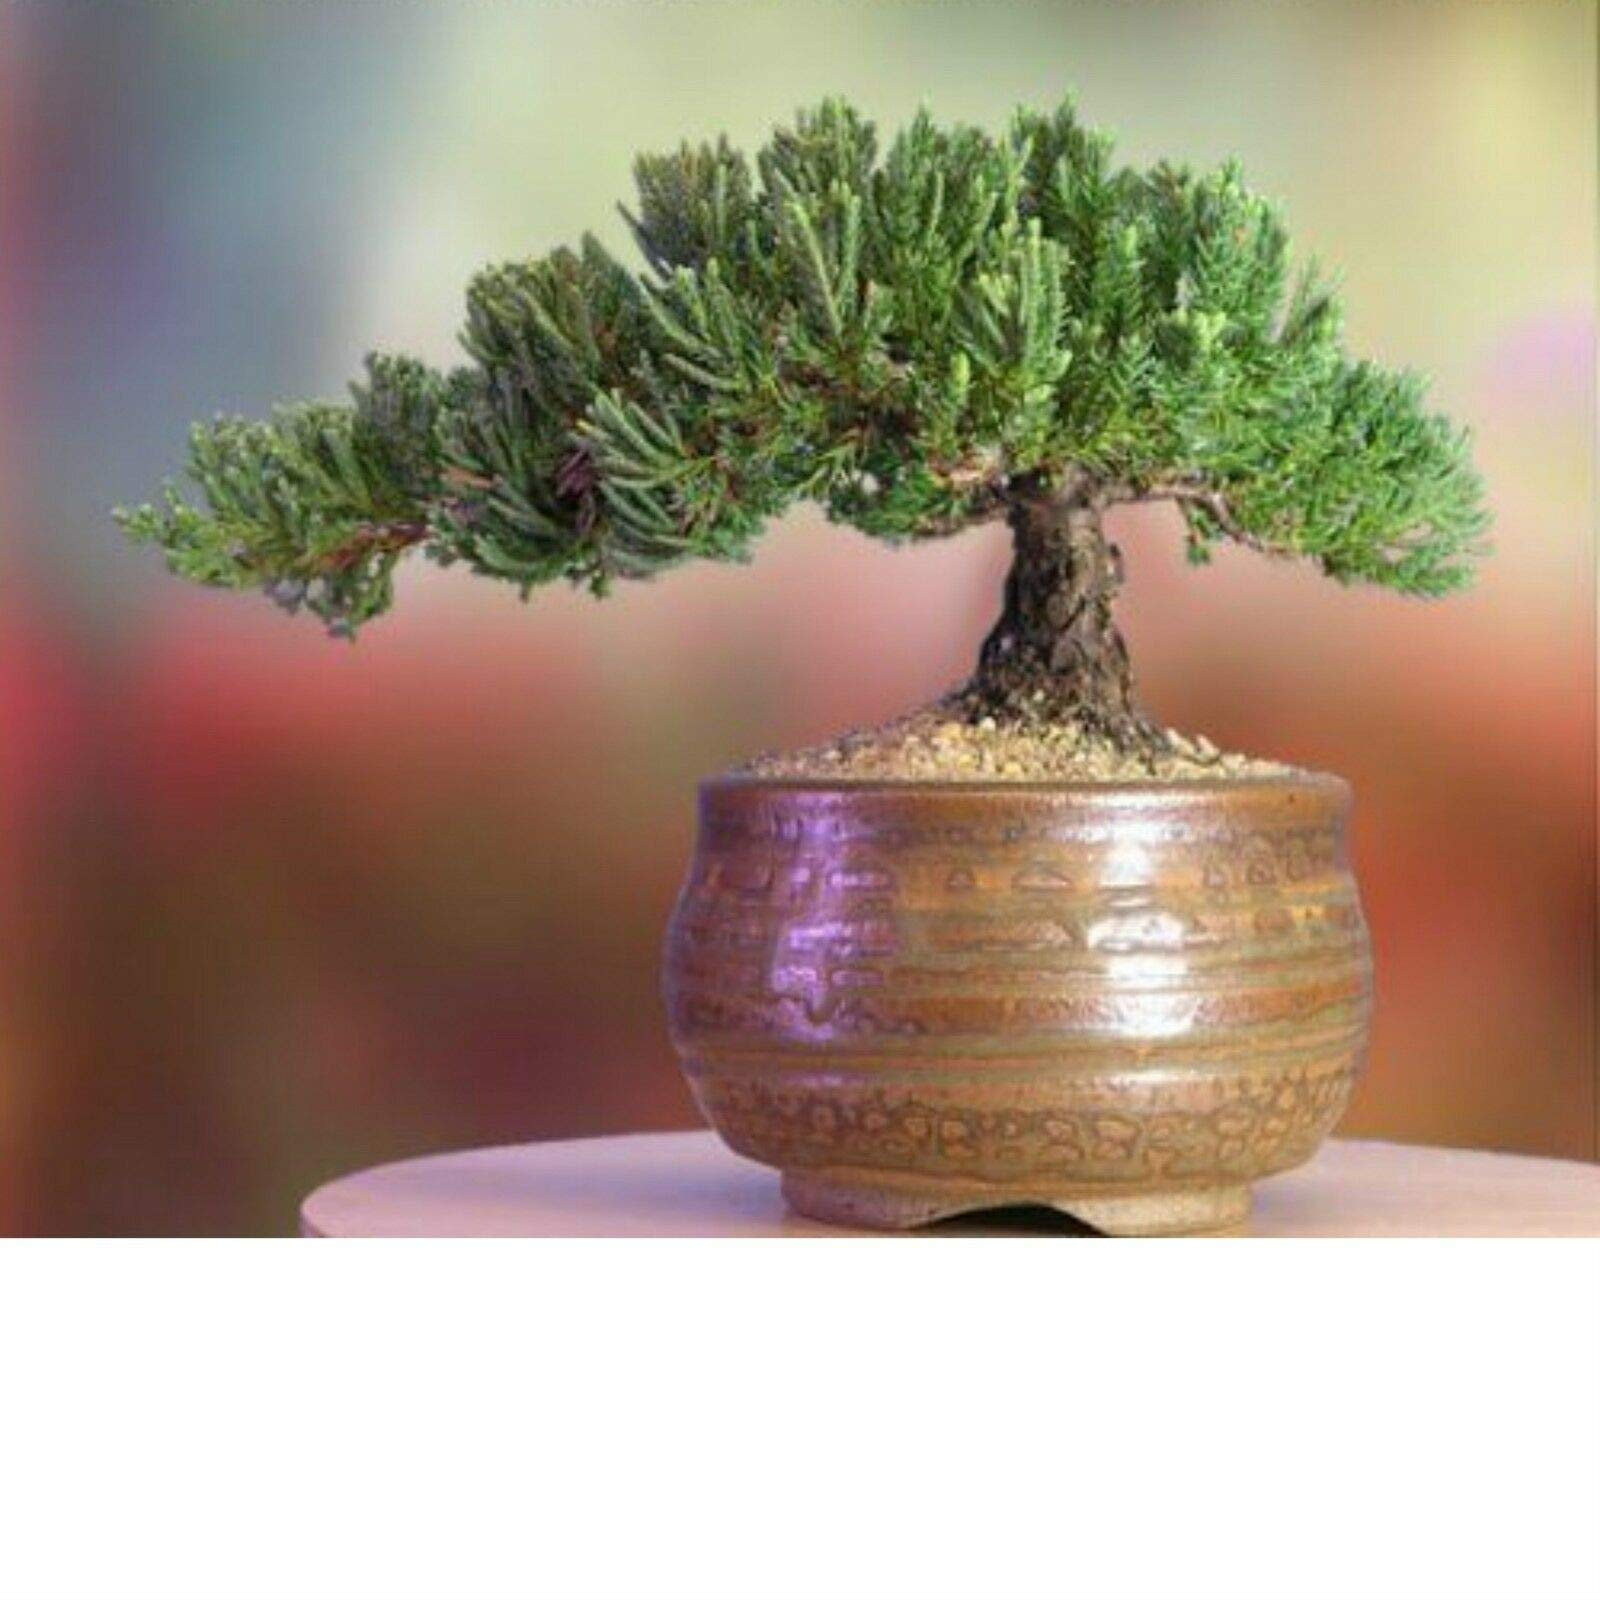 A Bonsai Juniper 6 to 7 Year Old Tree in Han-Kengai Cup Garden Home Live Plant